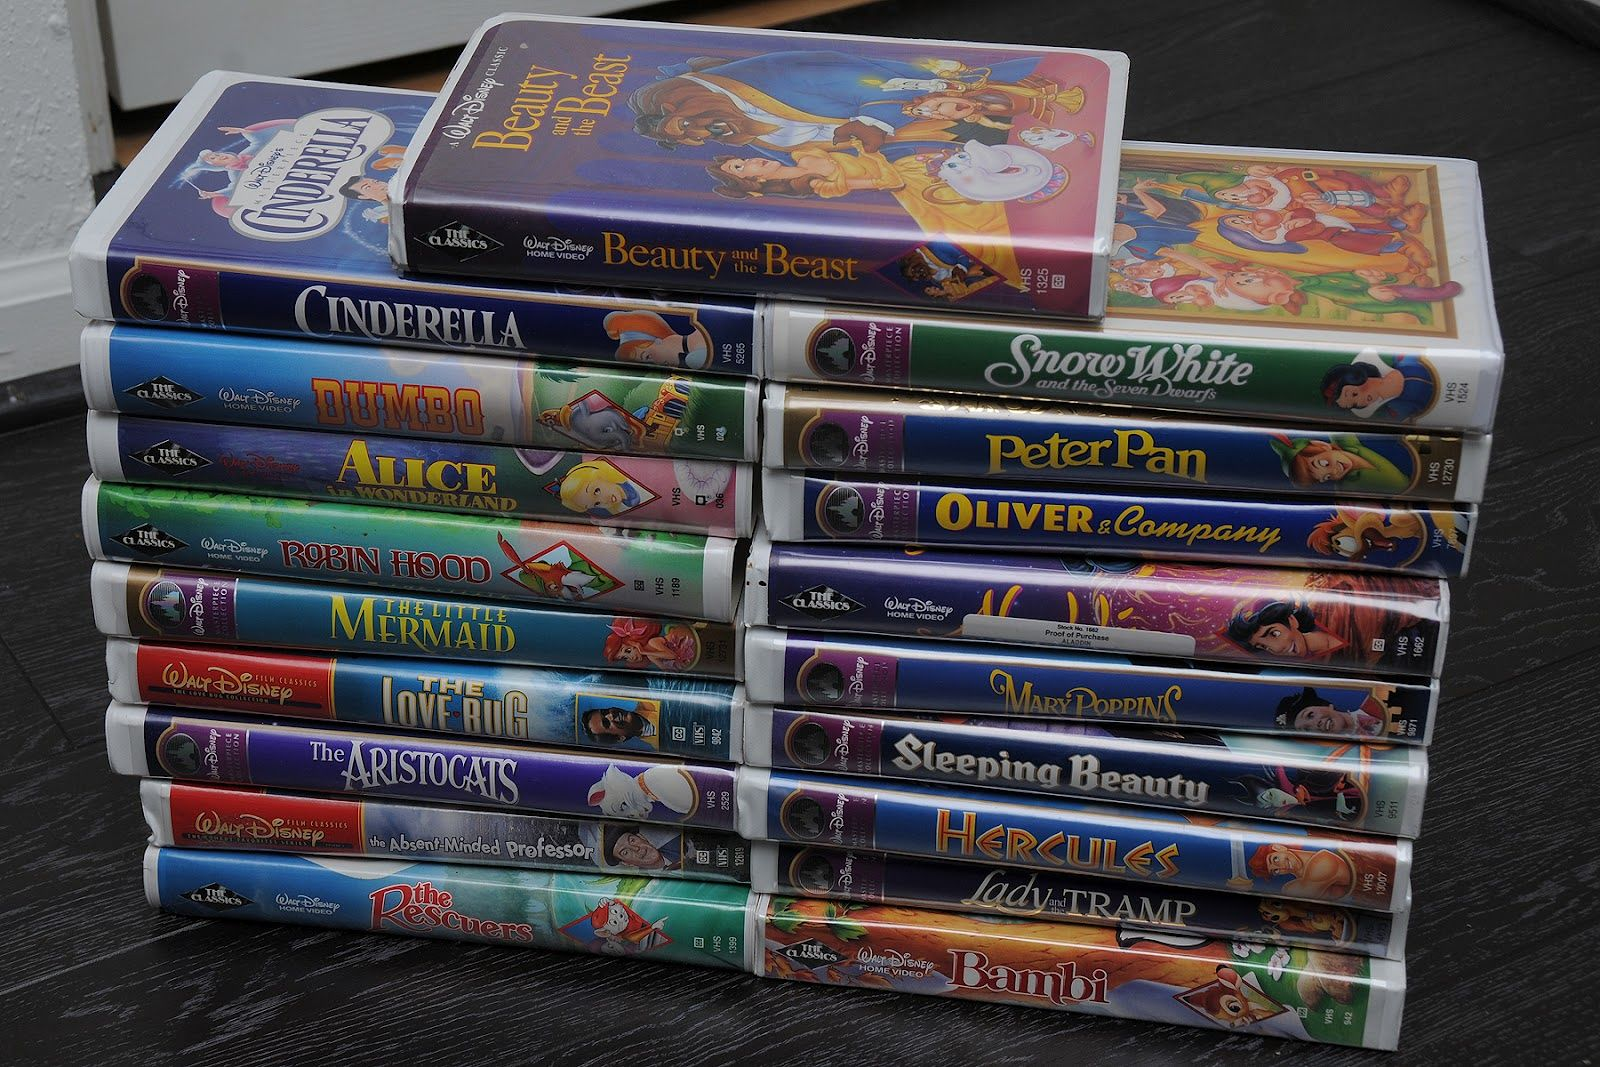 disney-vhs-tapes-are-selling-for-500-on-ebay-how-much-are-yours-worth-the-excitement-o-987638.jpg